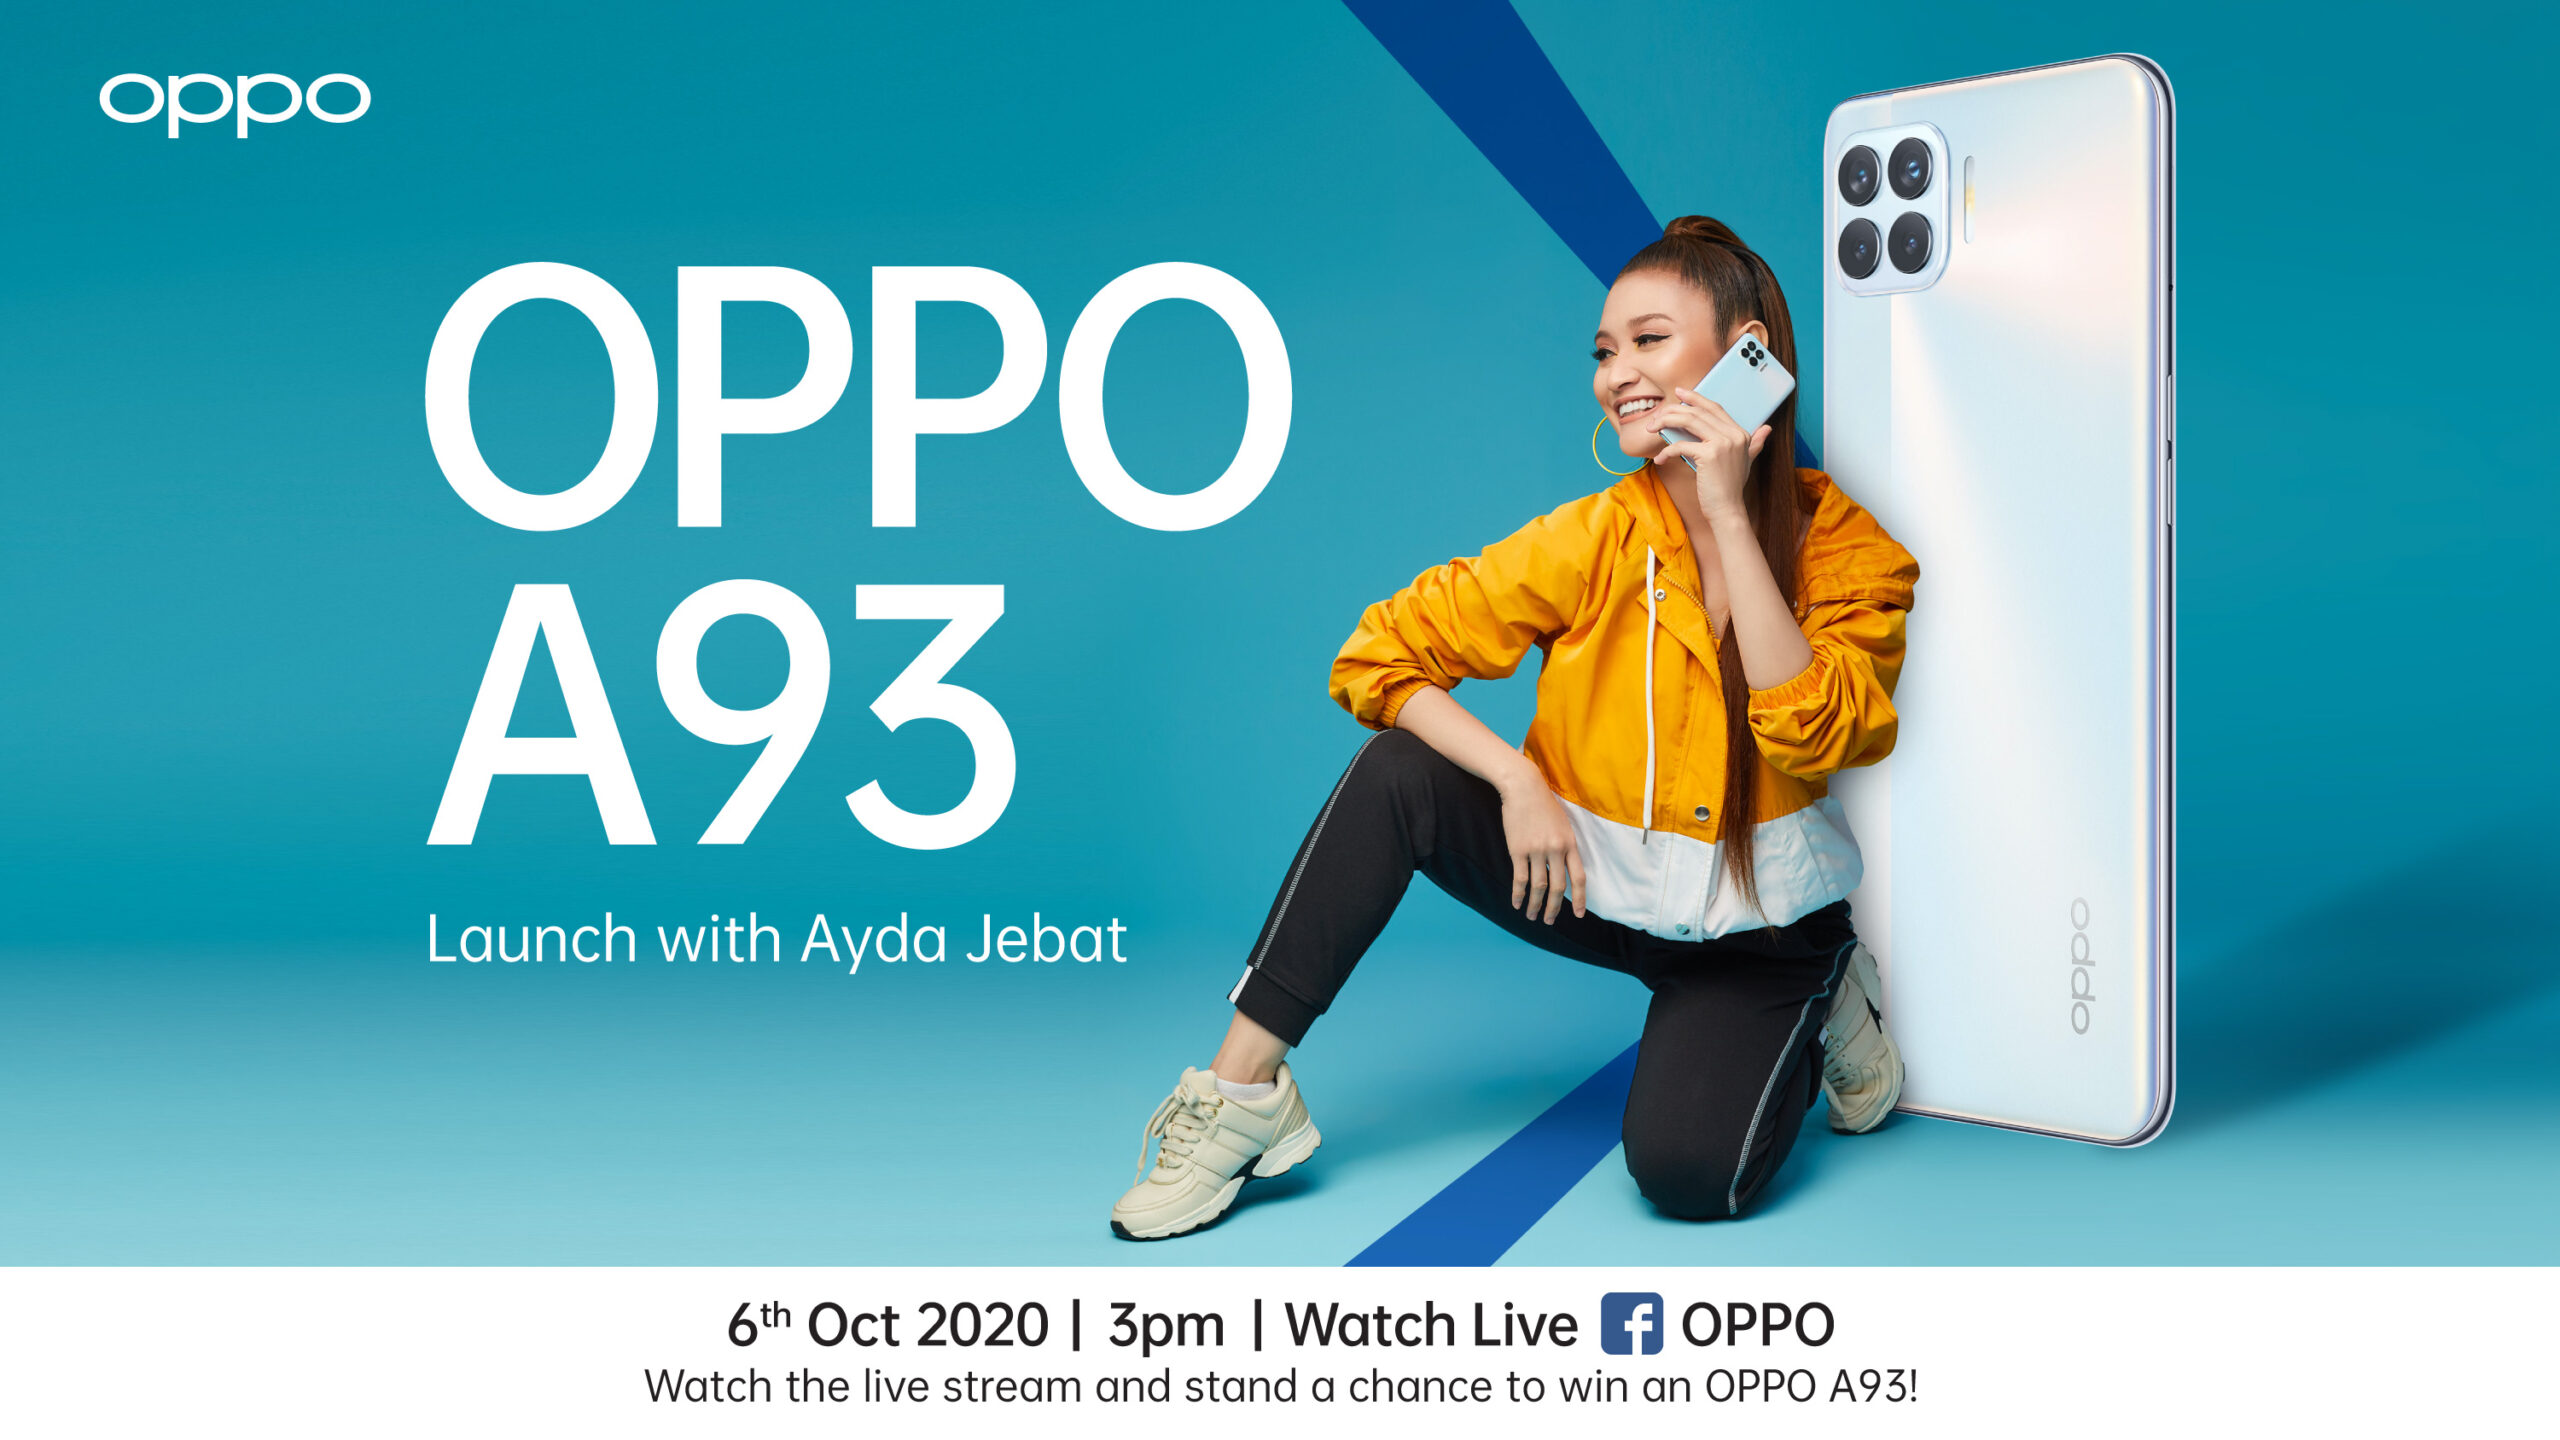 Oppo A93 a rebranded version of Oppo F17 Pro? Launching on Oct 6